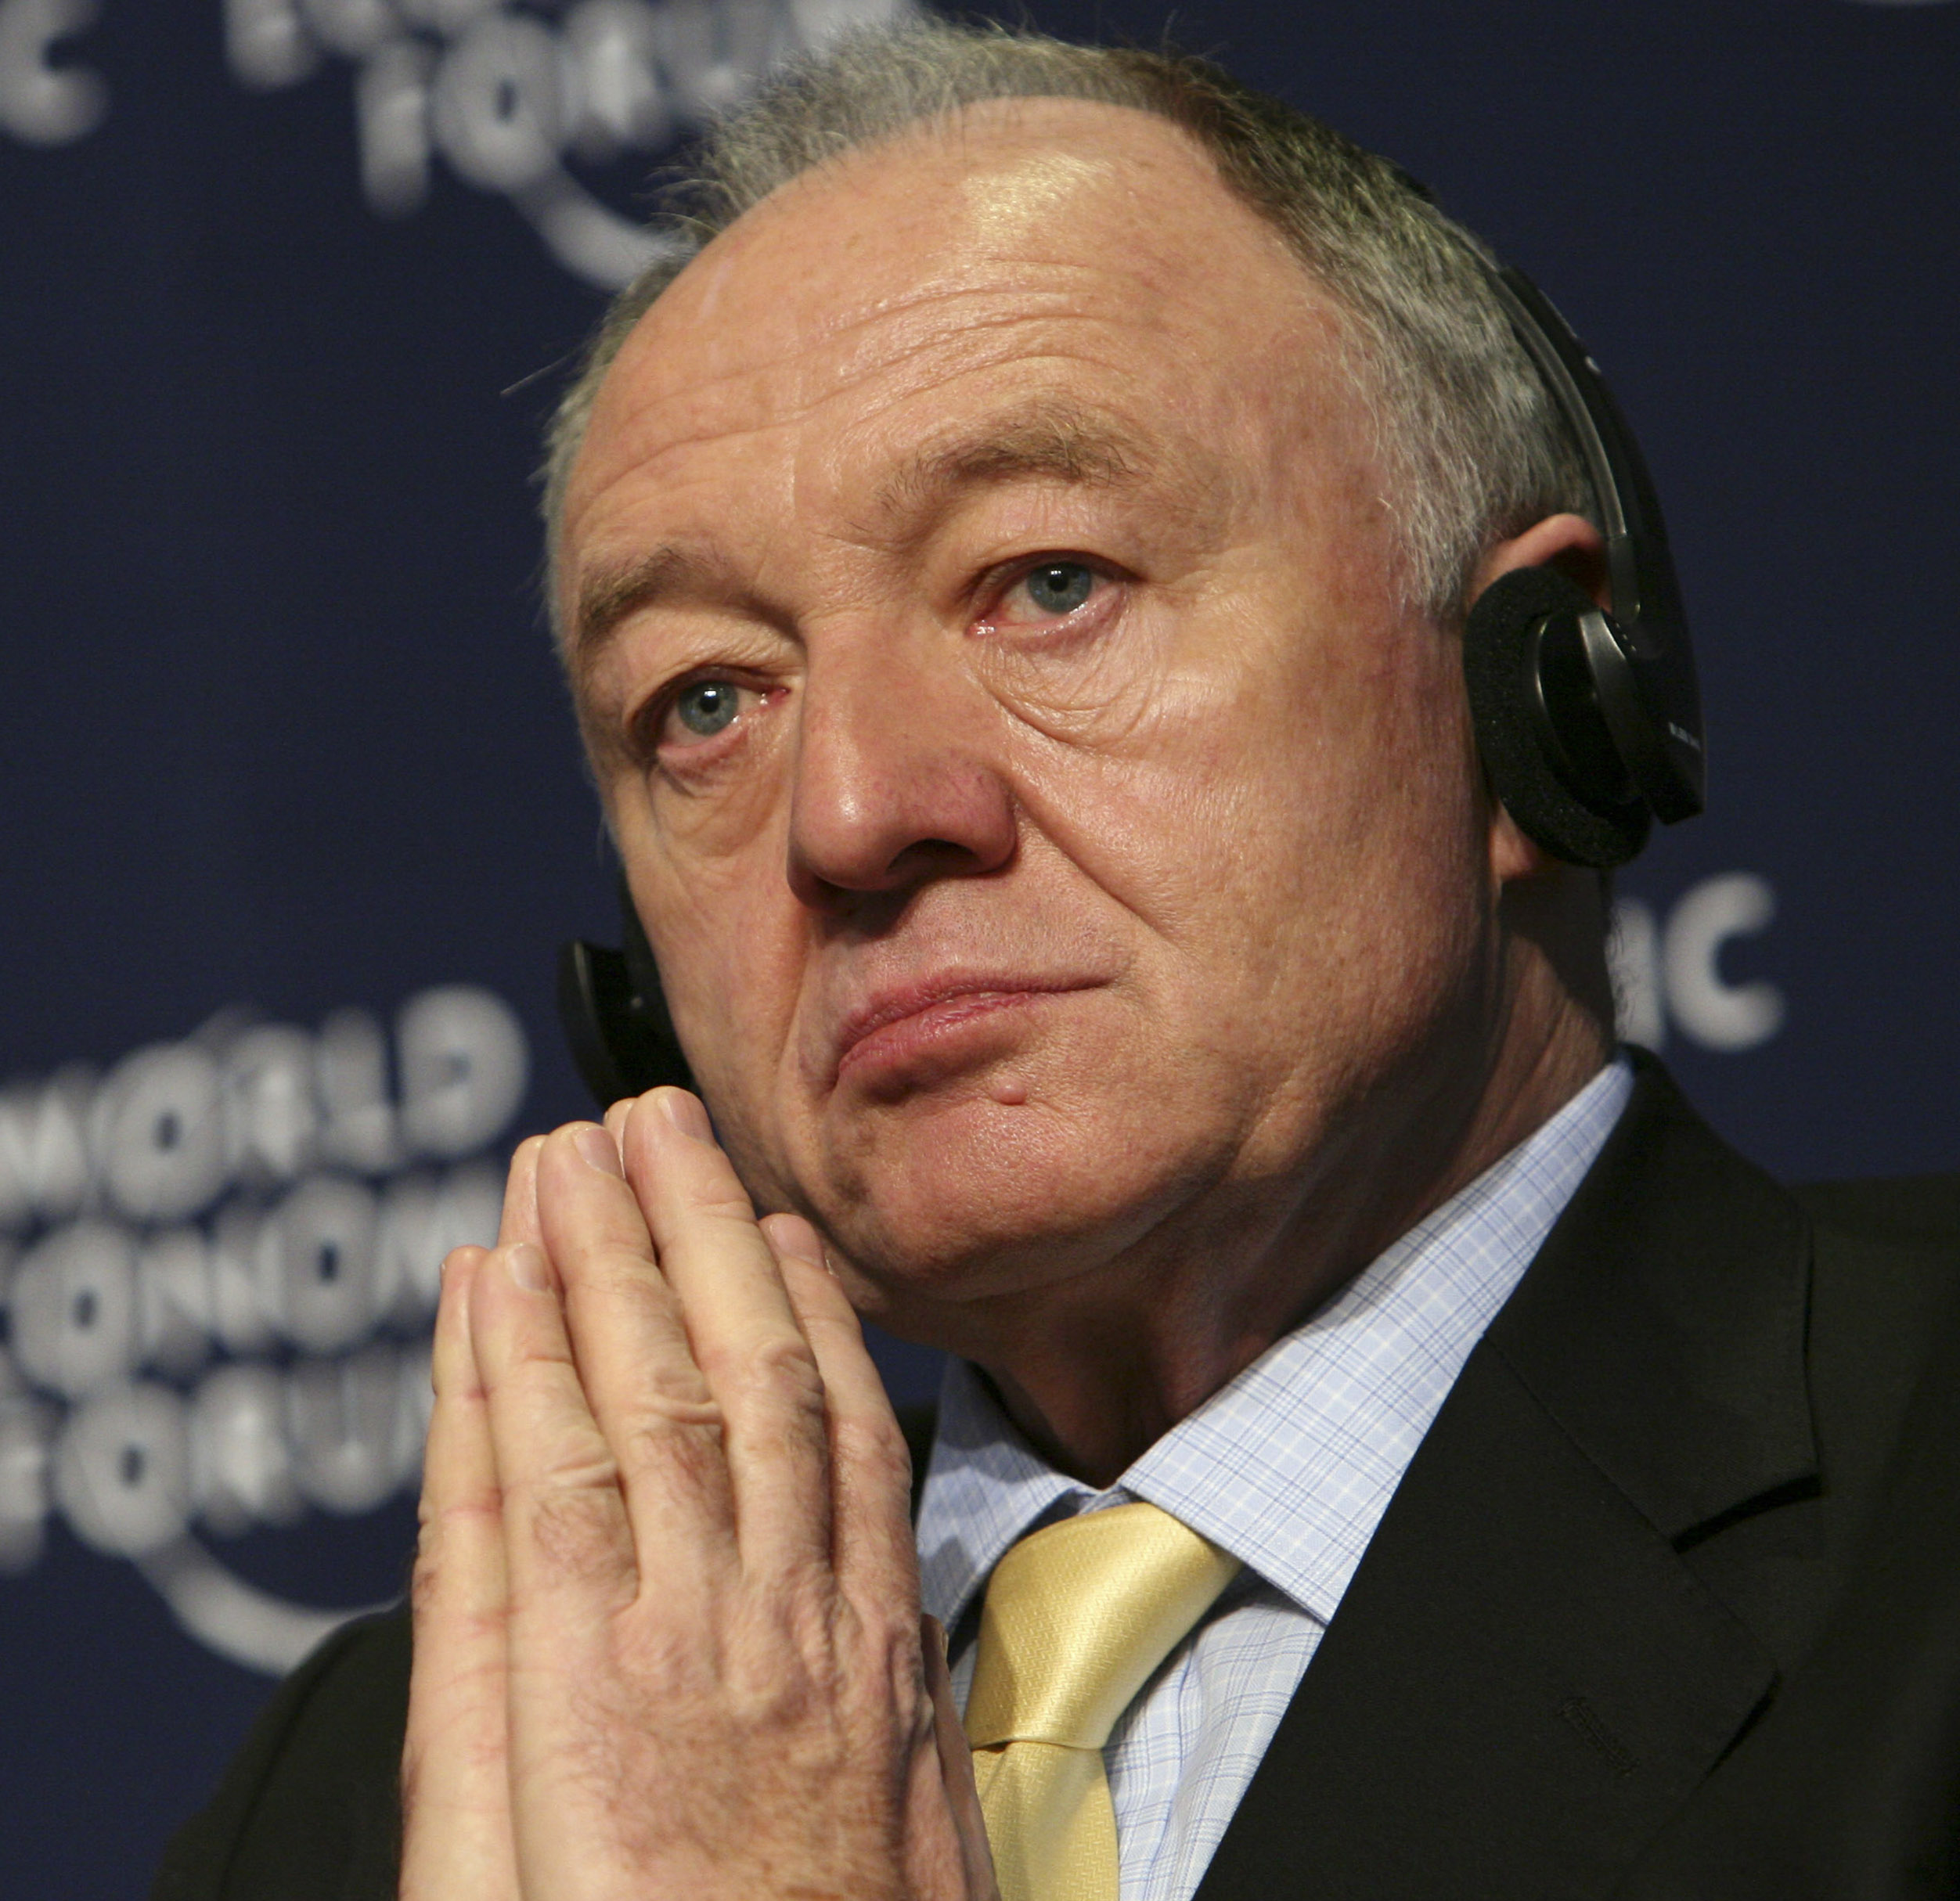 https://upload.wikimedia.org/wikipedia/commons/9/9b/Ken_Livingstone_-_World_Economic_Forum_Annual_Meeting_Davos_2008_(cropped).jpg